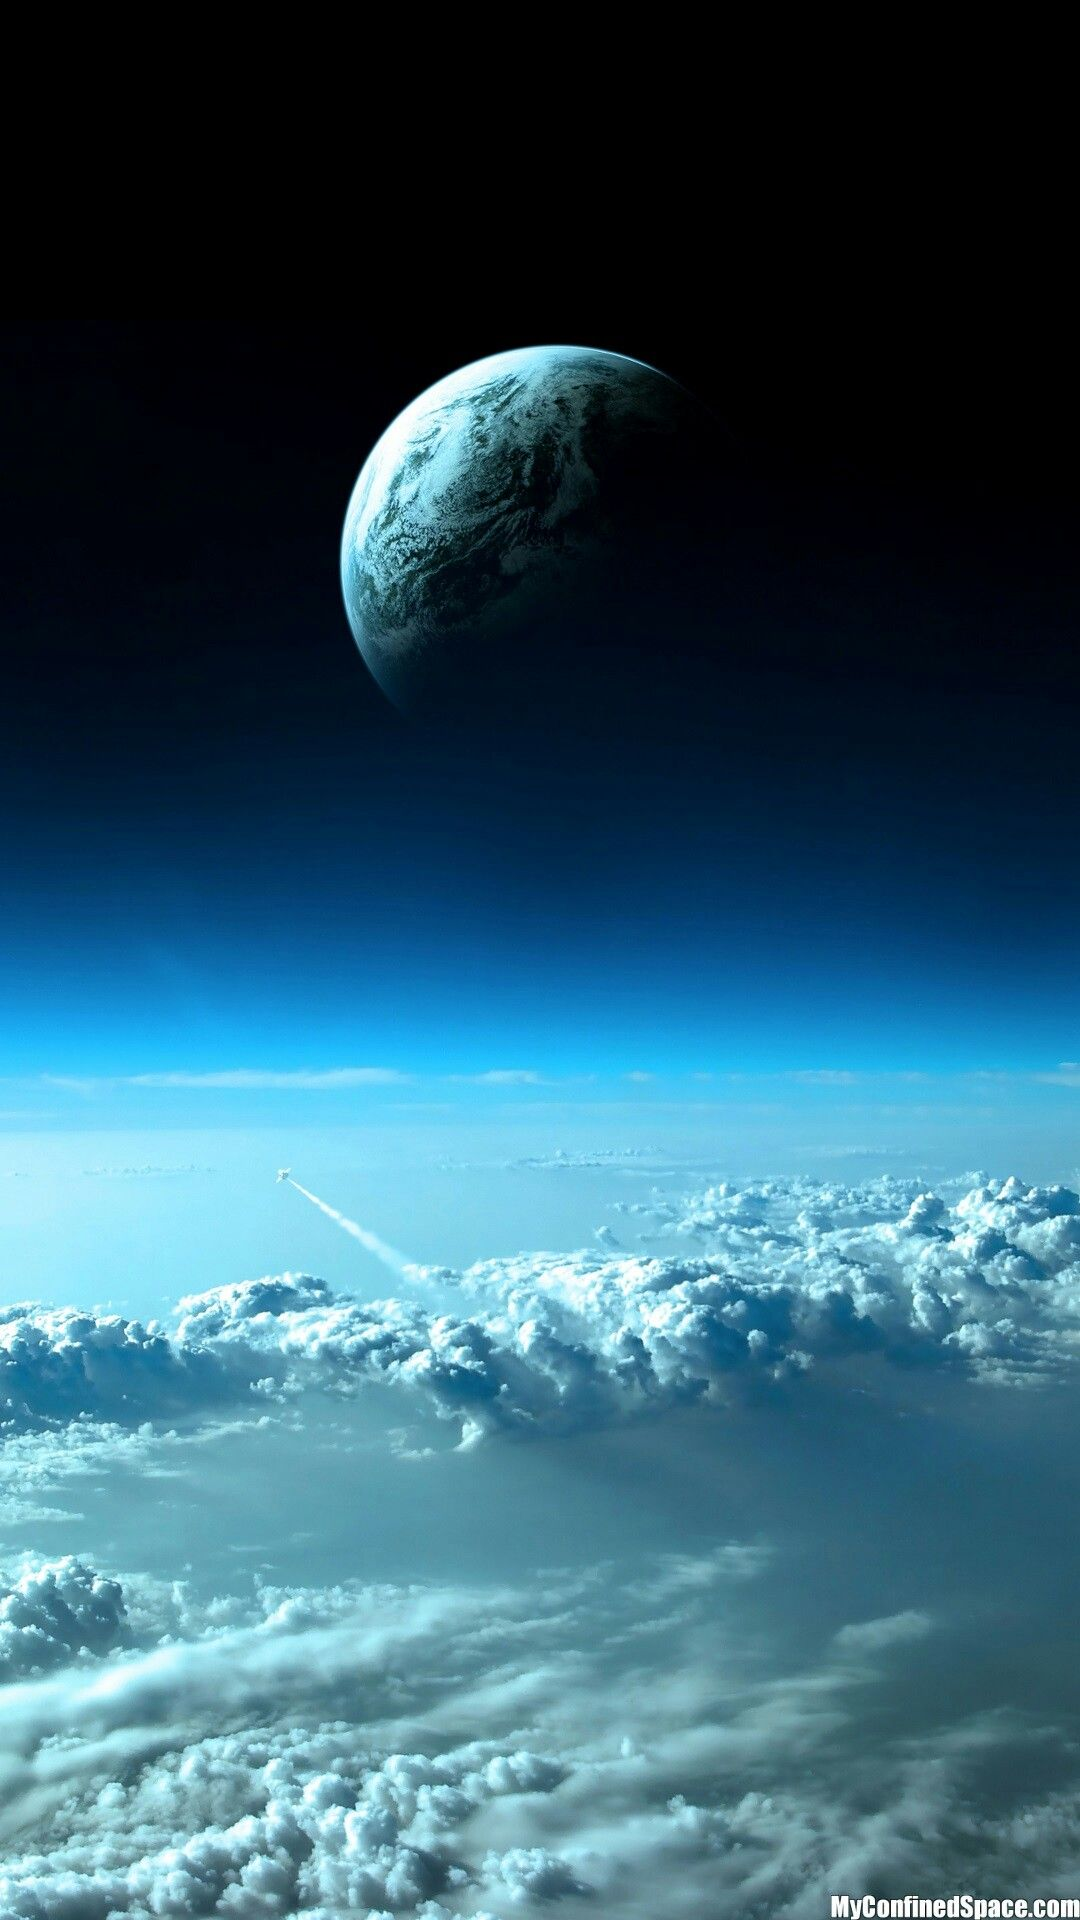 Pin By Camrron Mount On Wallpapers Space Iphone Wallpaper Wallpaper Space Earth View